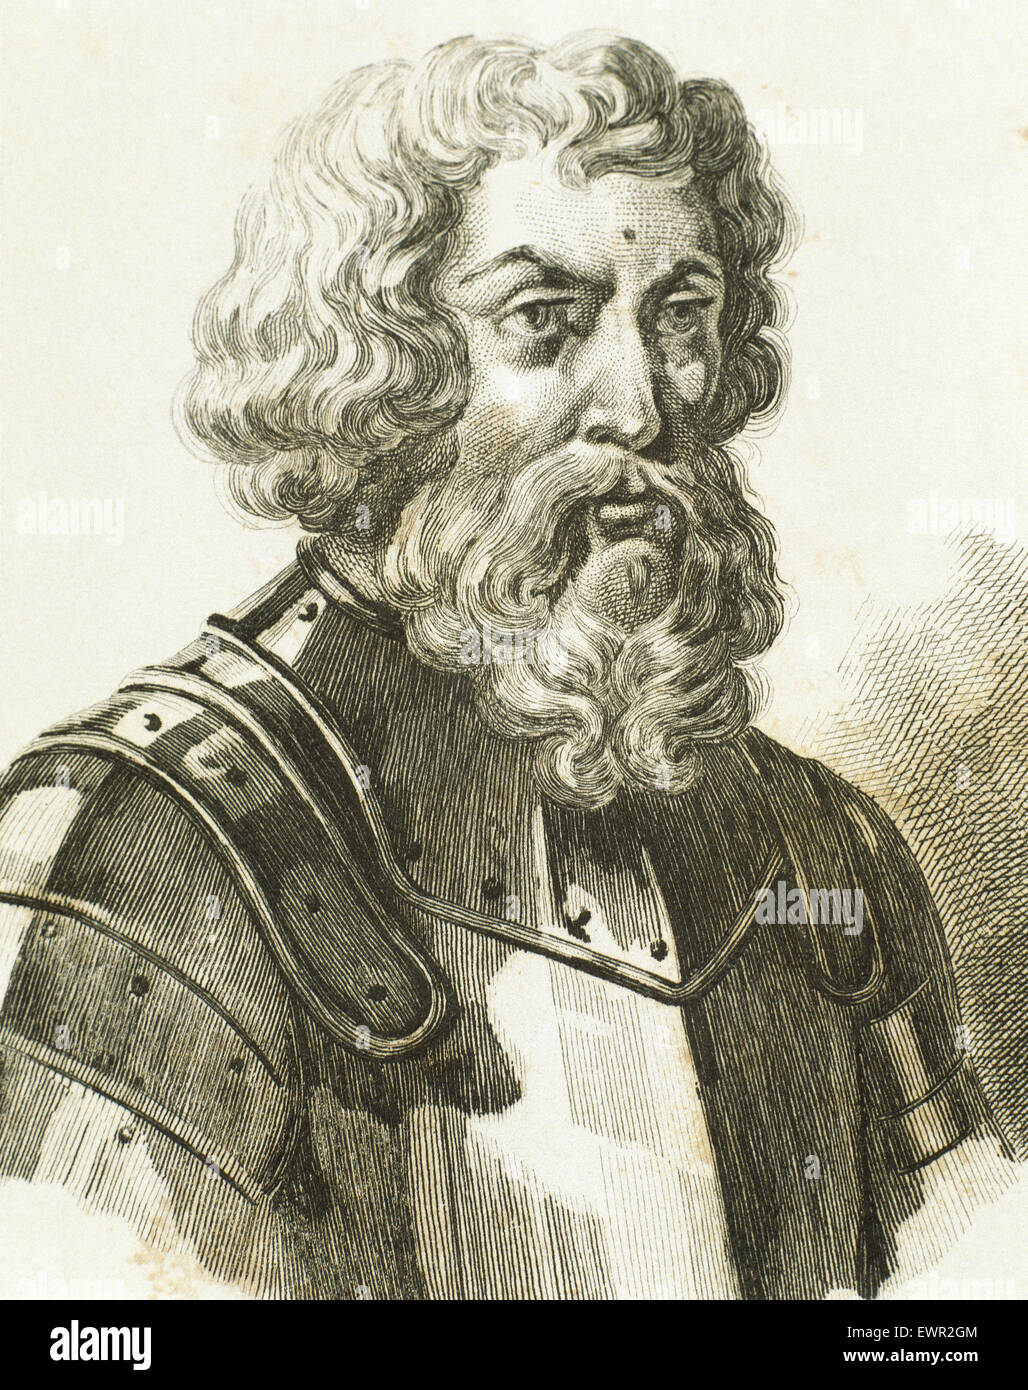 Dmitry Donskoy (1350-1389). Grand Prince of Moscow. Engraving. - Stock Image